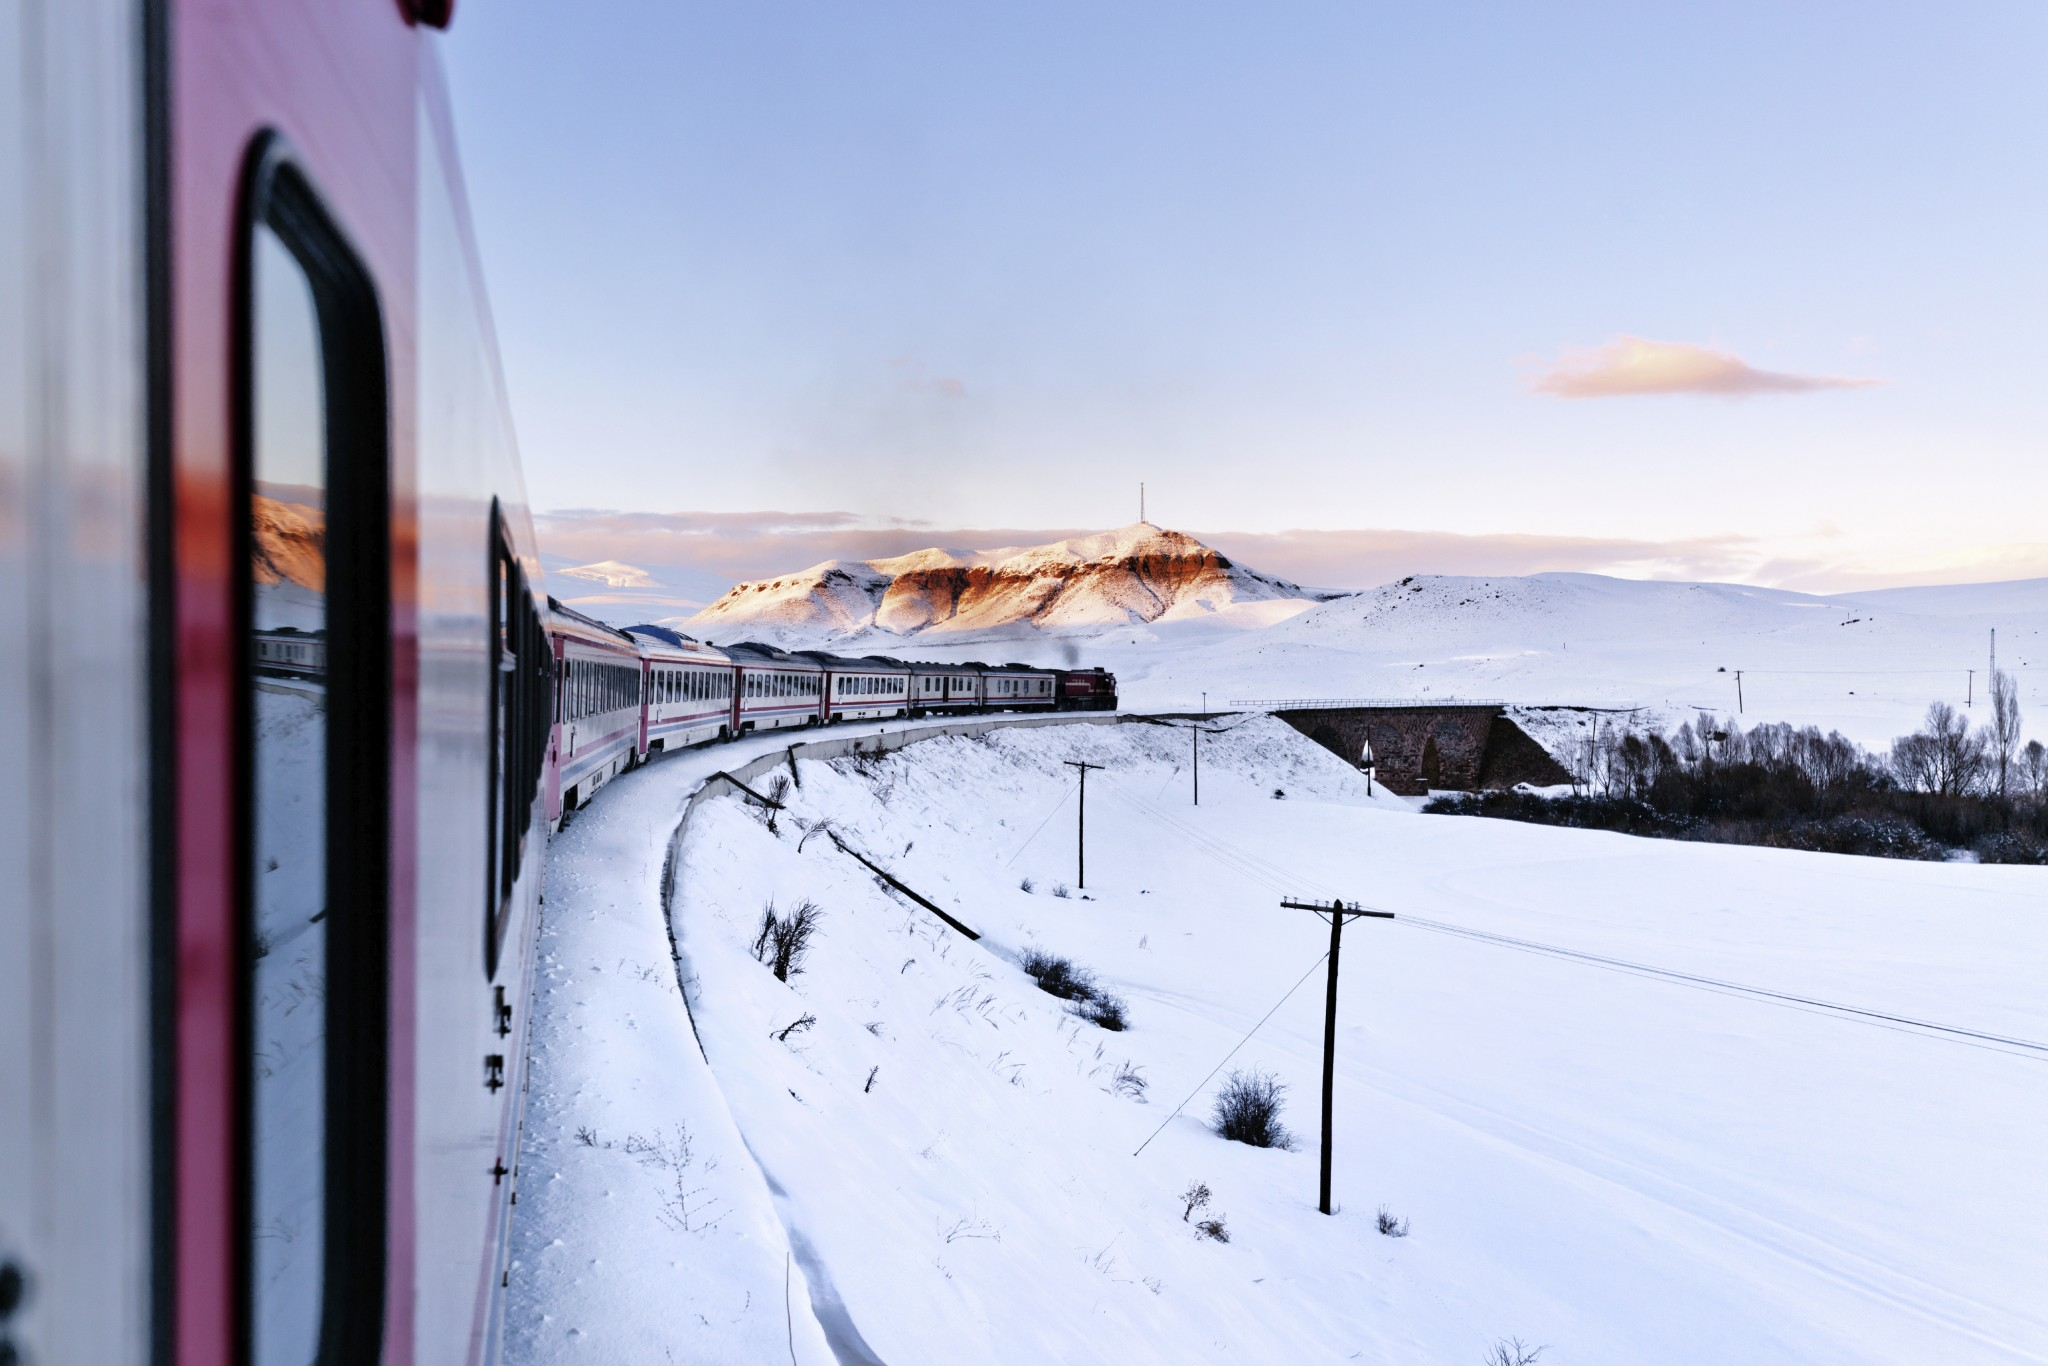 Train on bend in the snow - sezer66